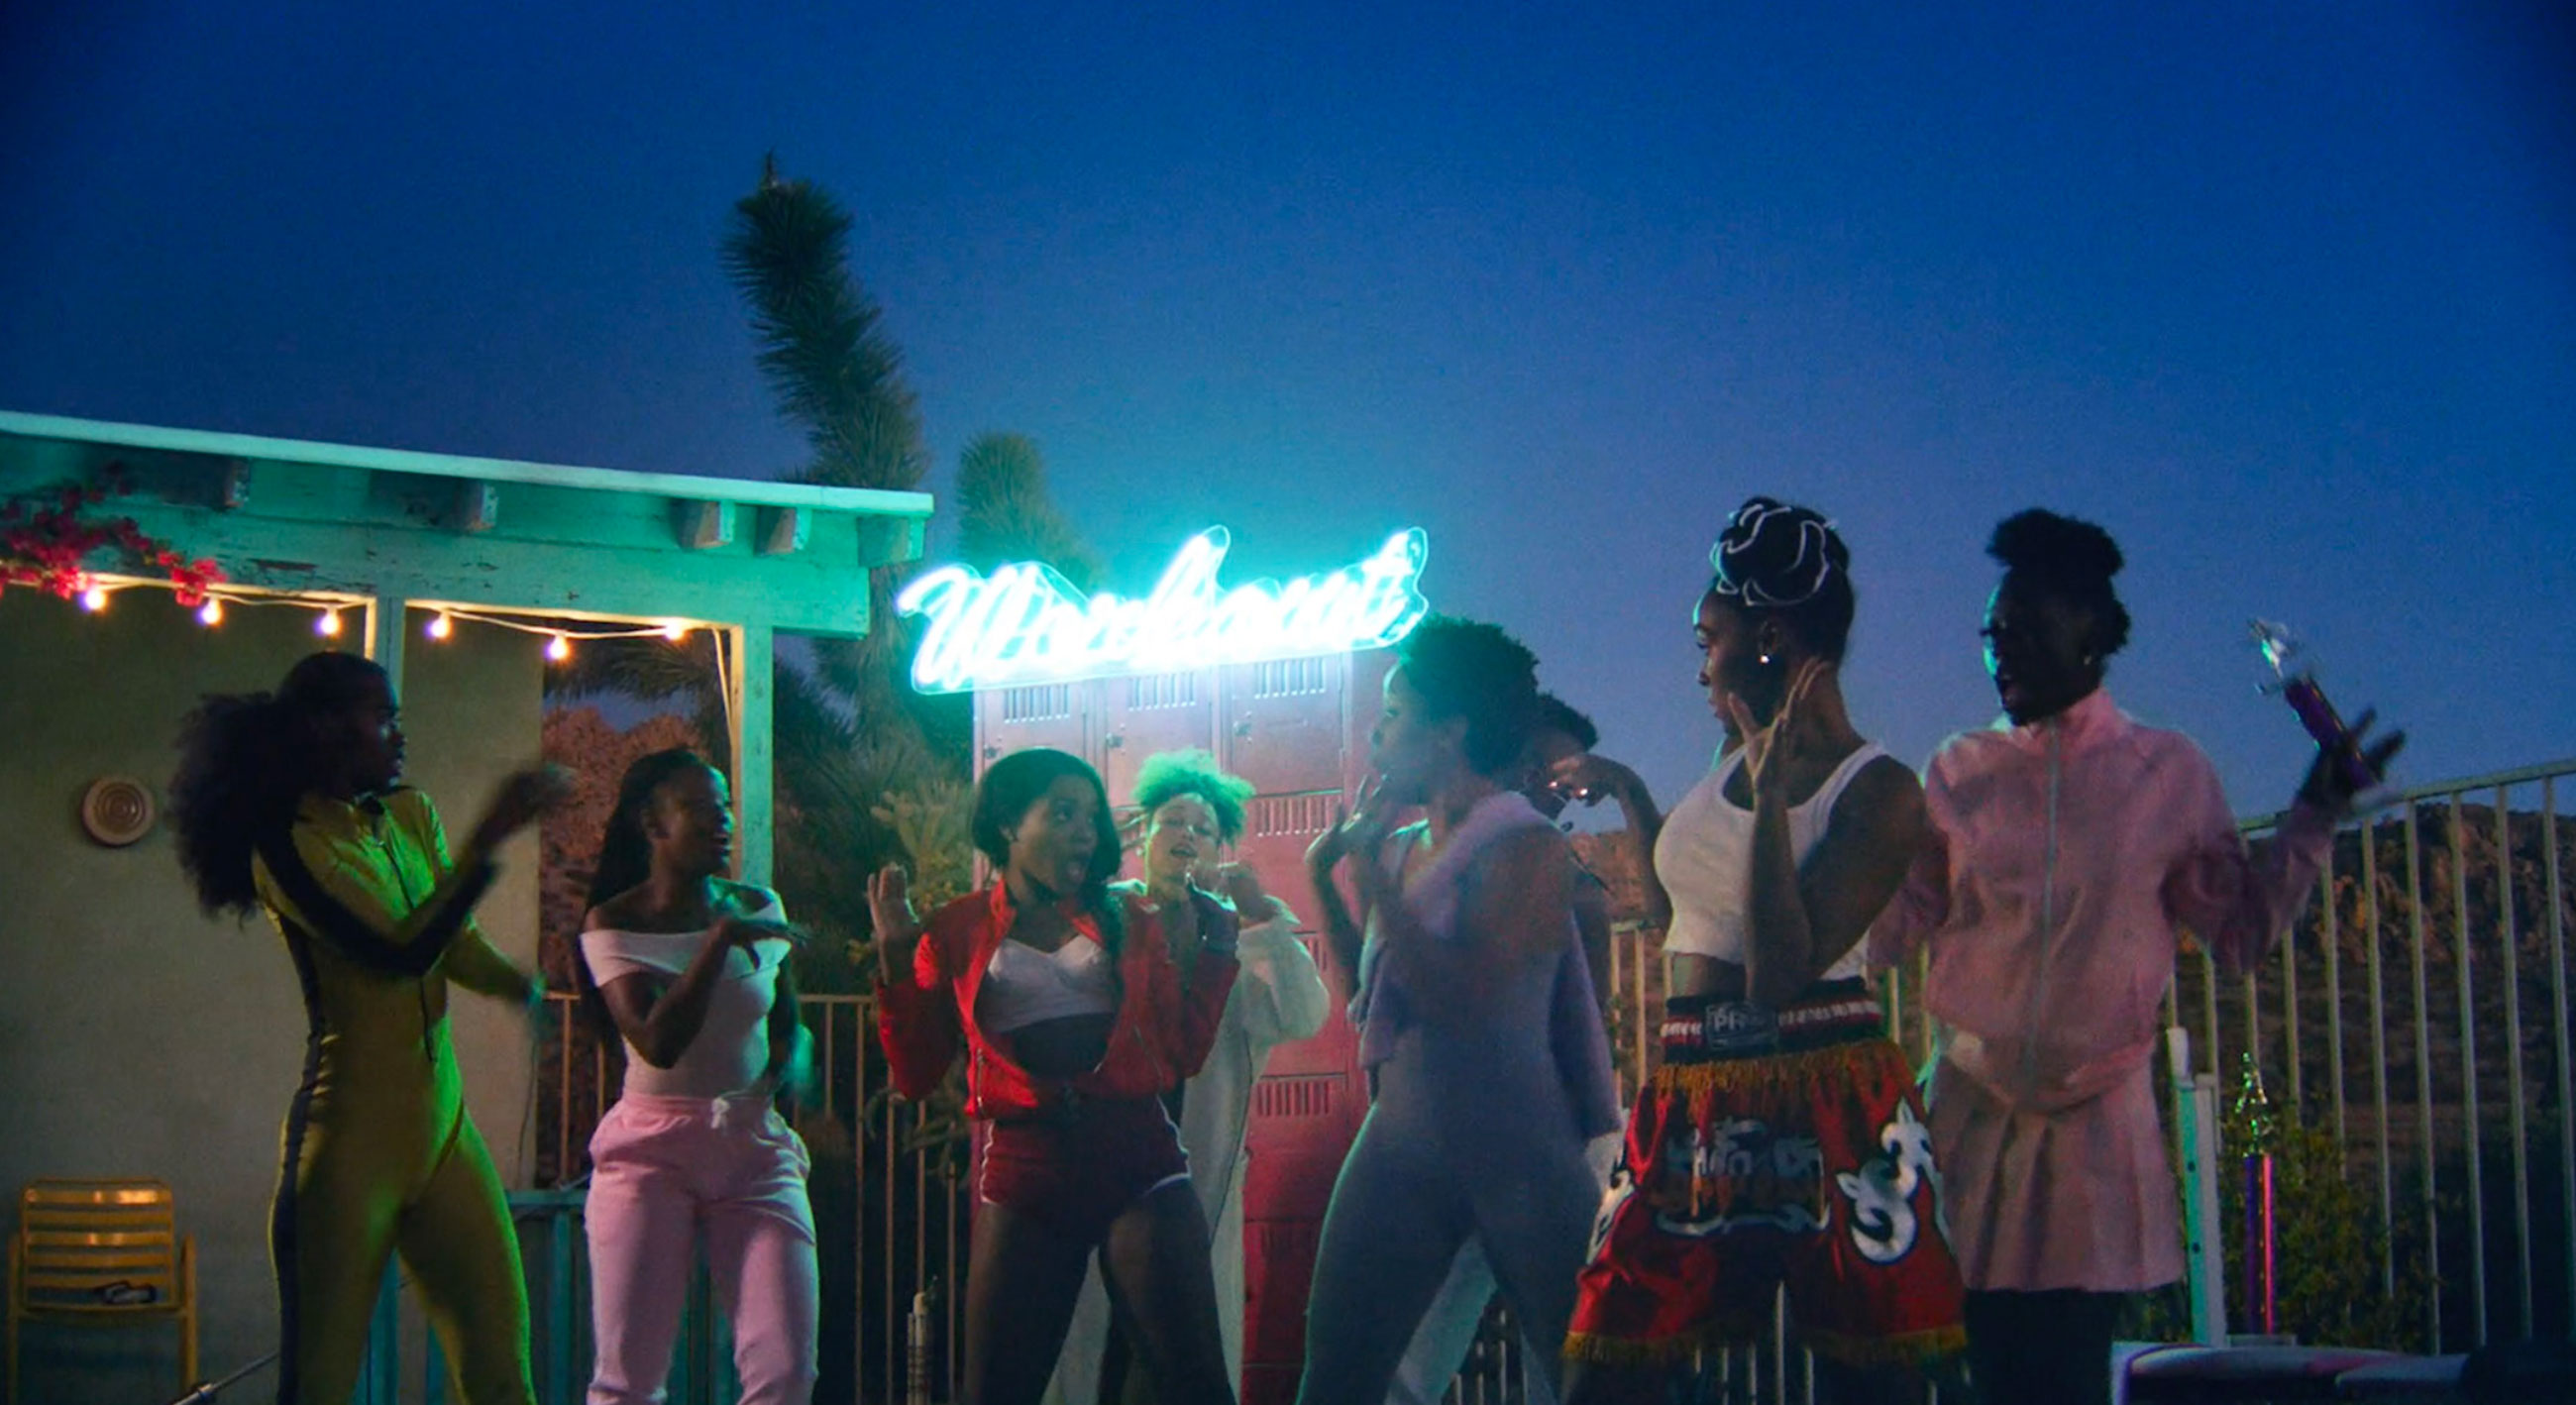 Still from Janelle Monae's PYNK Music Video